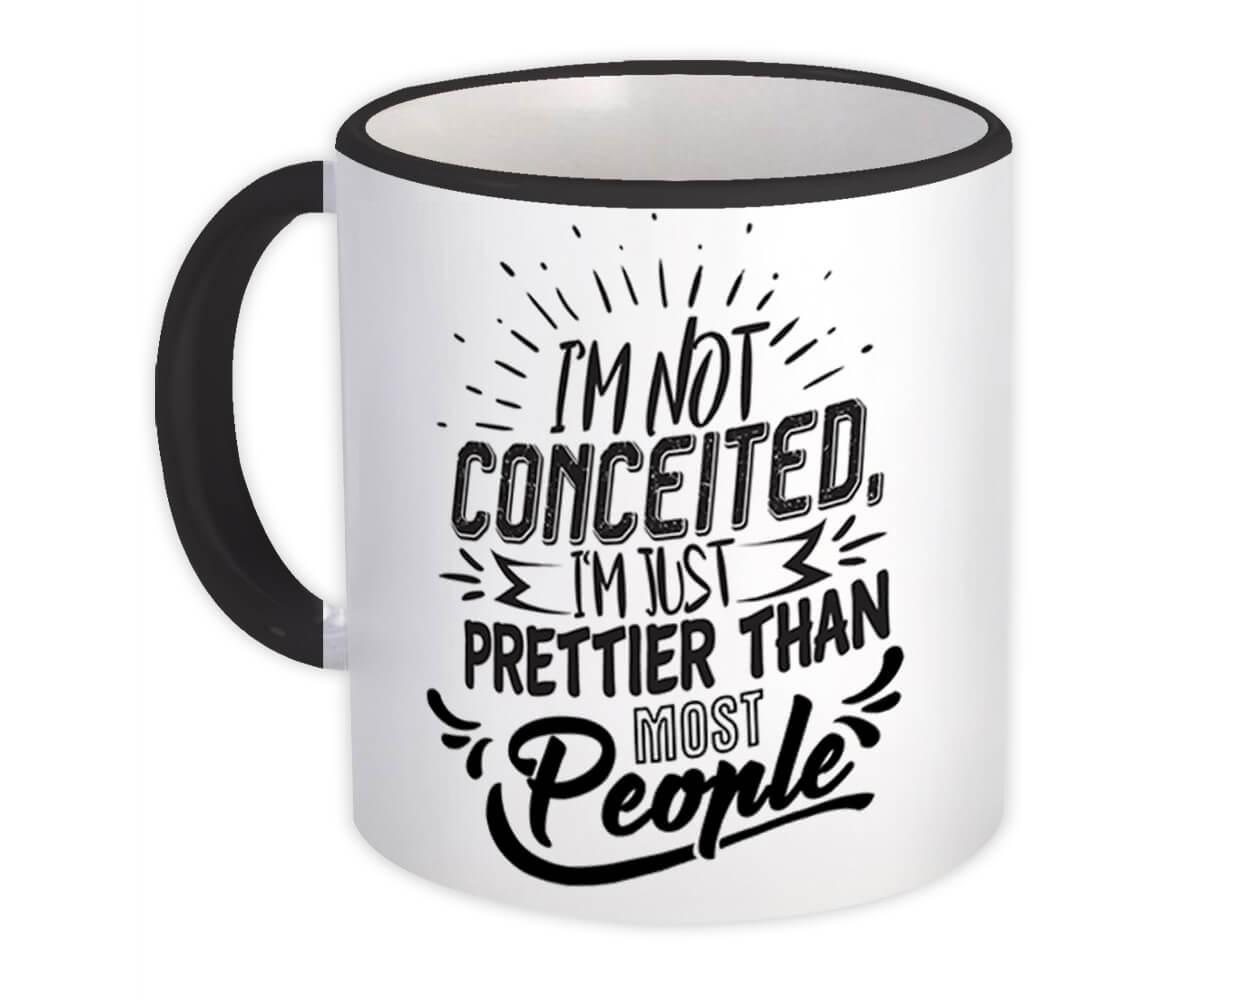 Not Conceited : Gift Mug Prettier Than Most People Funny Joke Friend